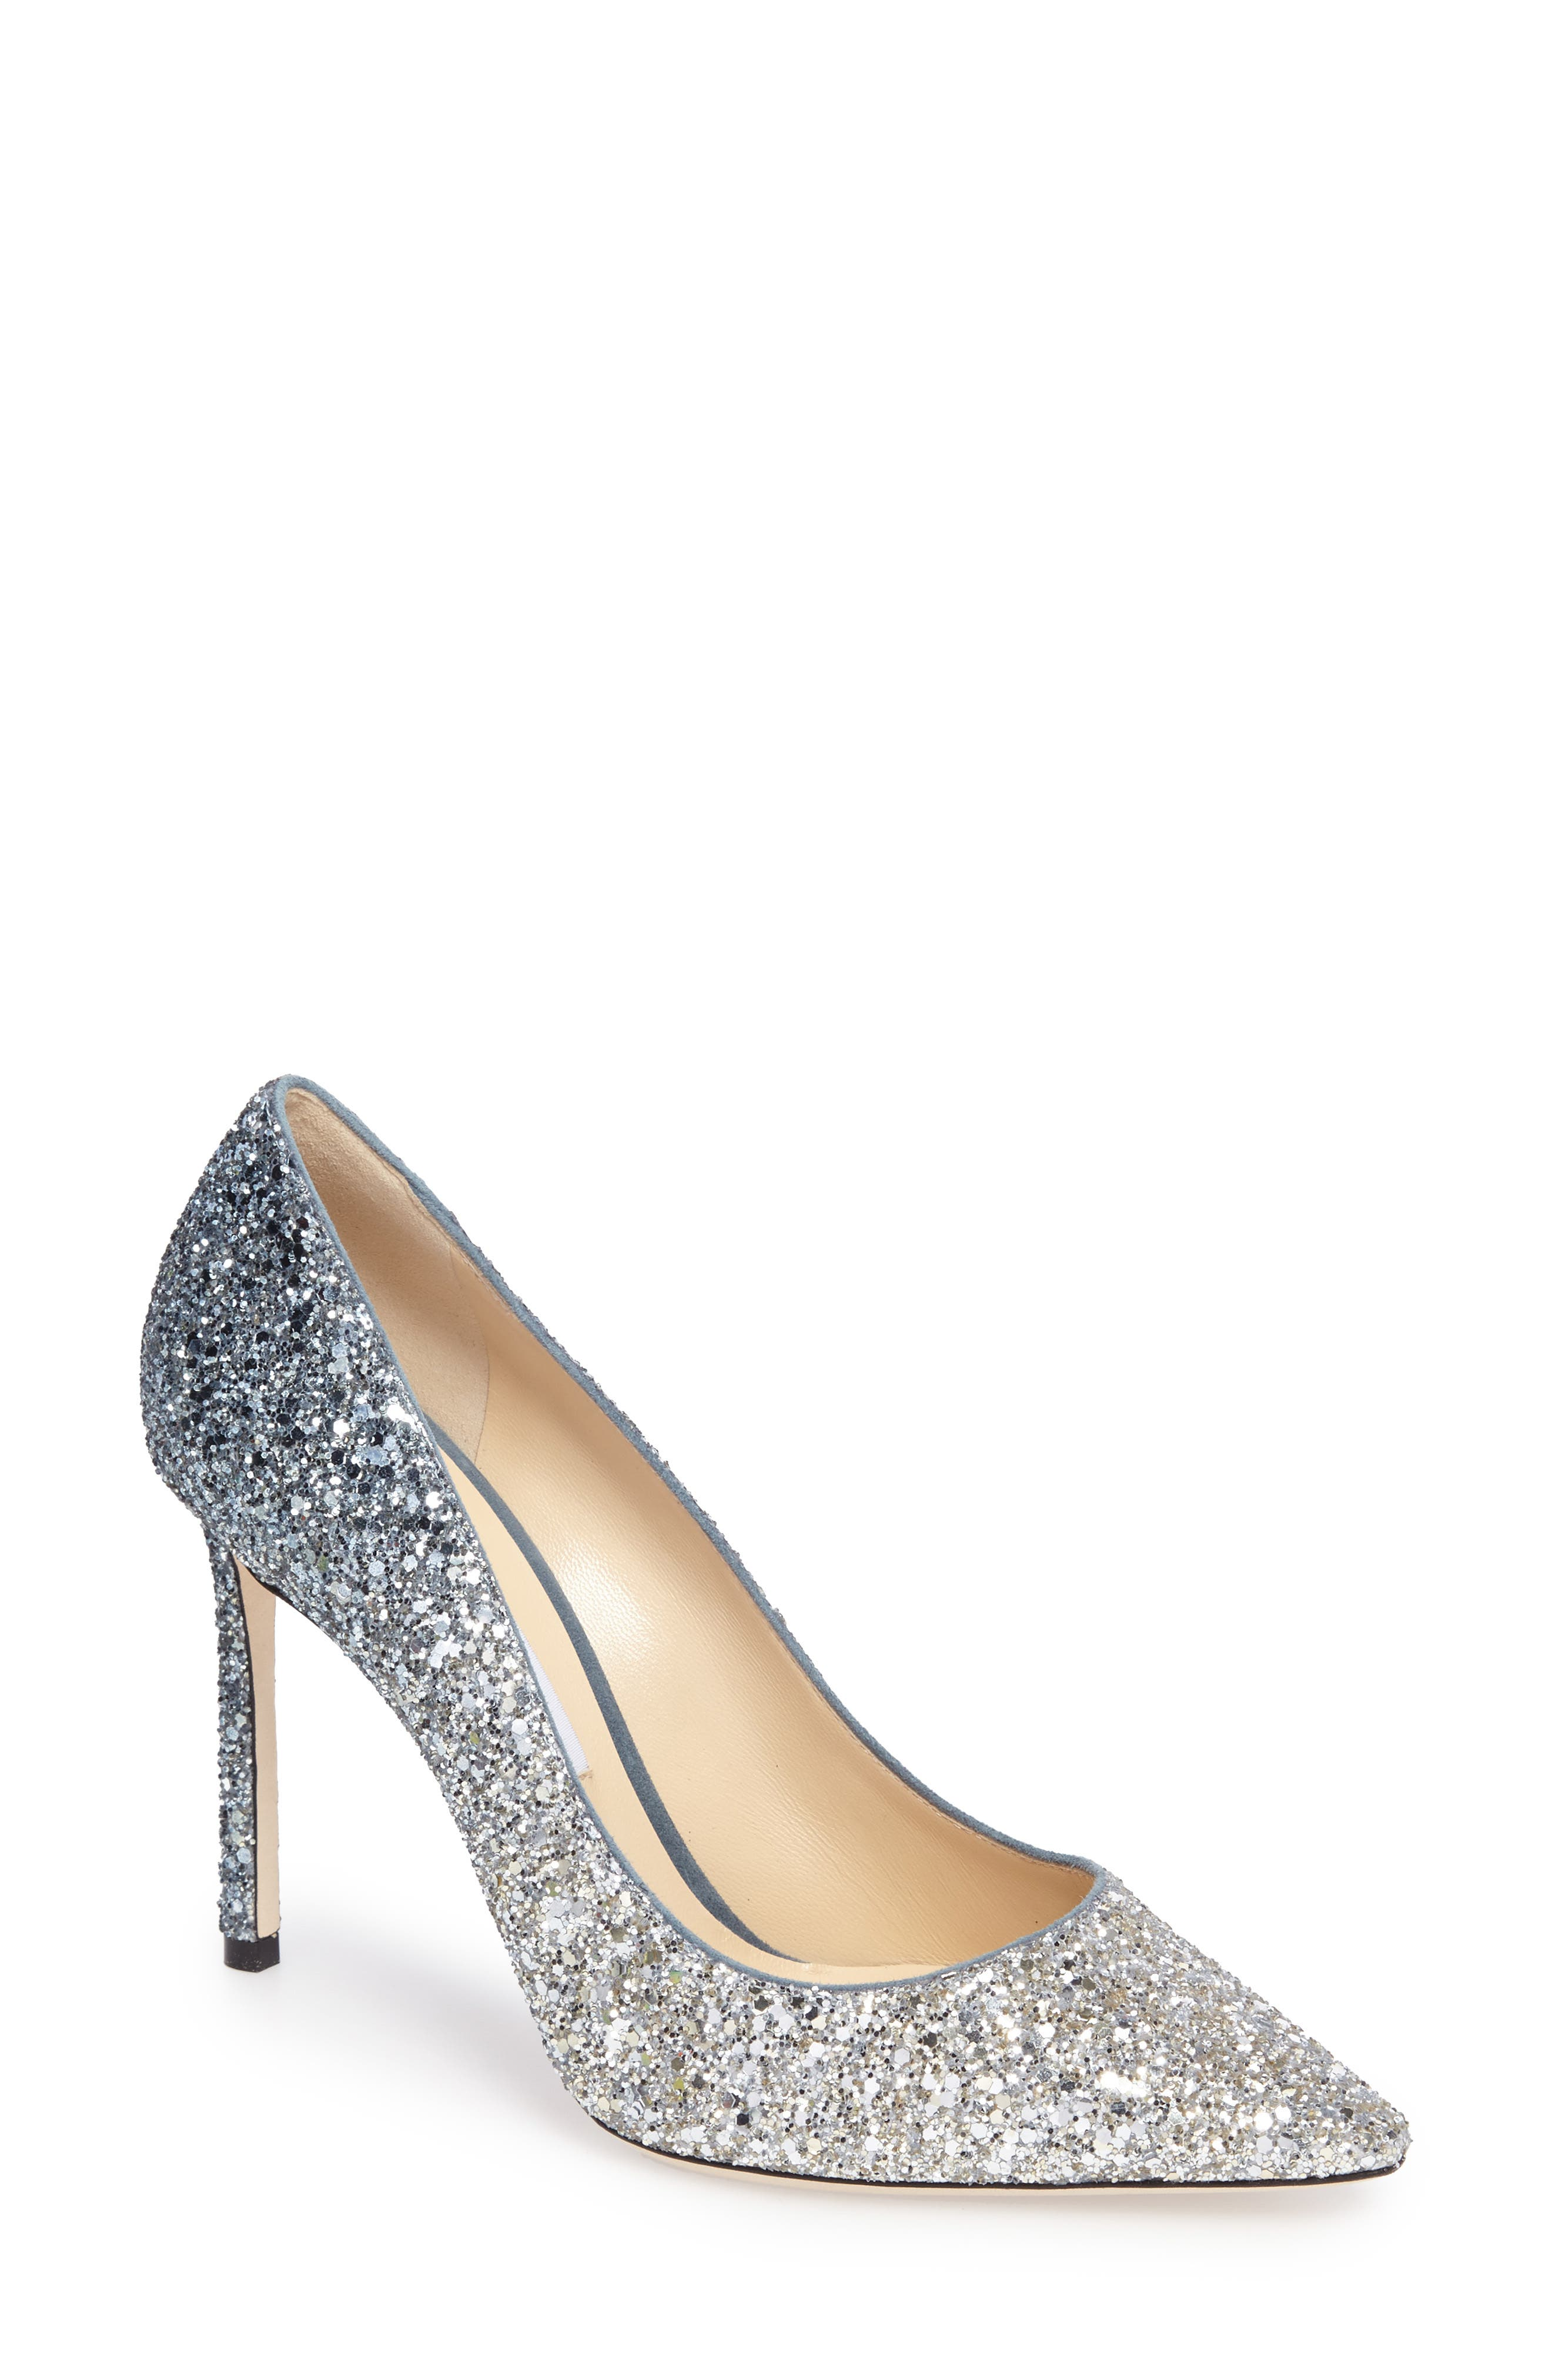 Romy Glitter Pump,                             Main thumbnail 1, color,                             Silver/ Dusk Blue